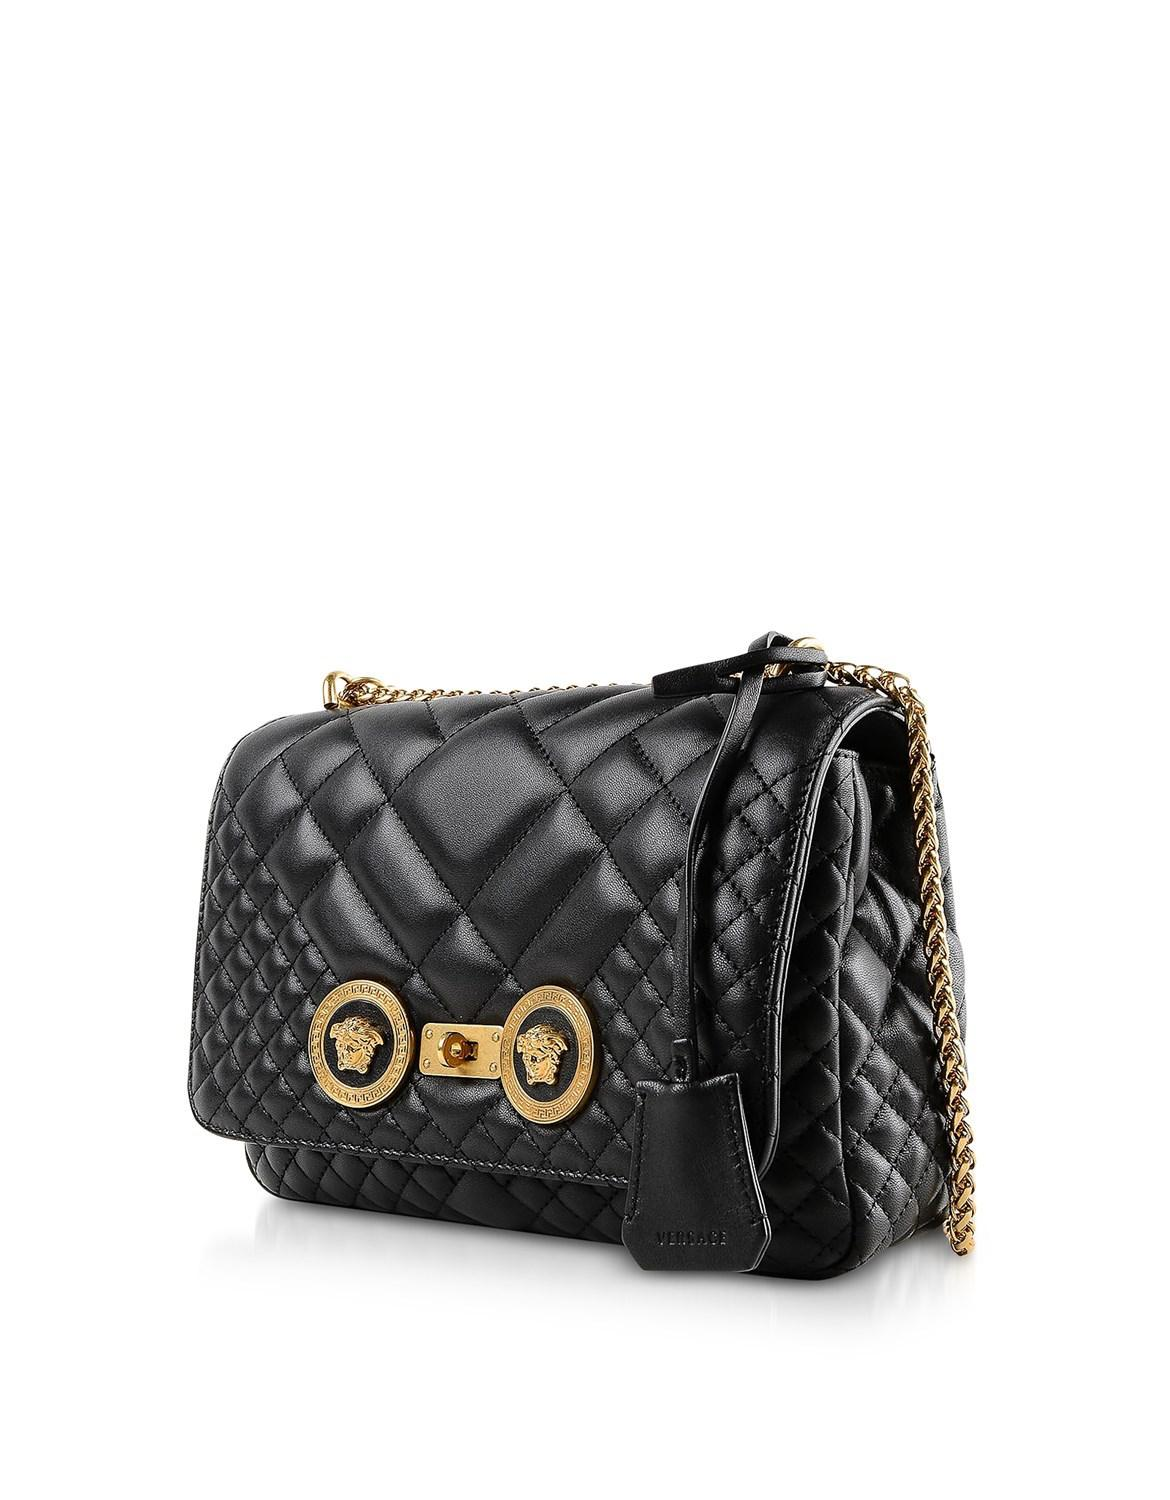 a20dfb05b31b Lyst - Versace Medium Black Quilted Leather Shoulder Bag in Black